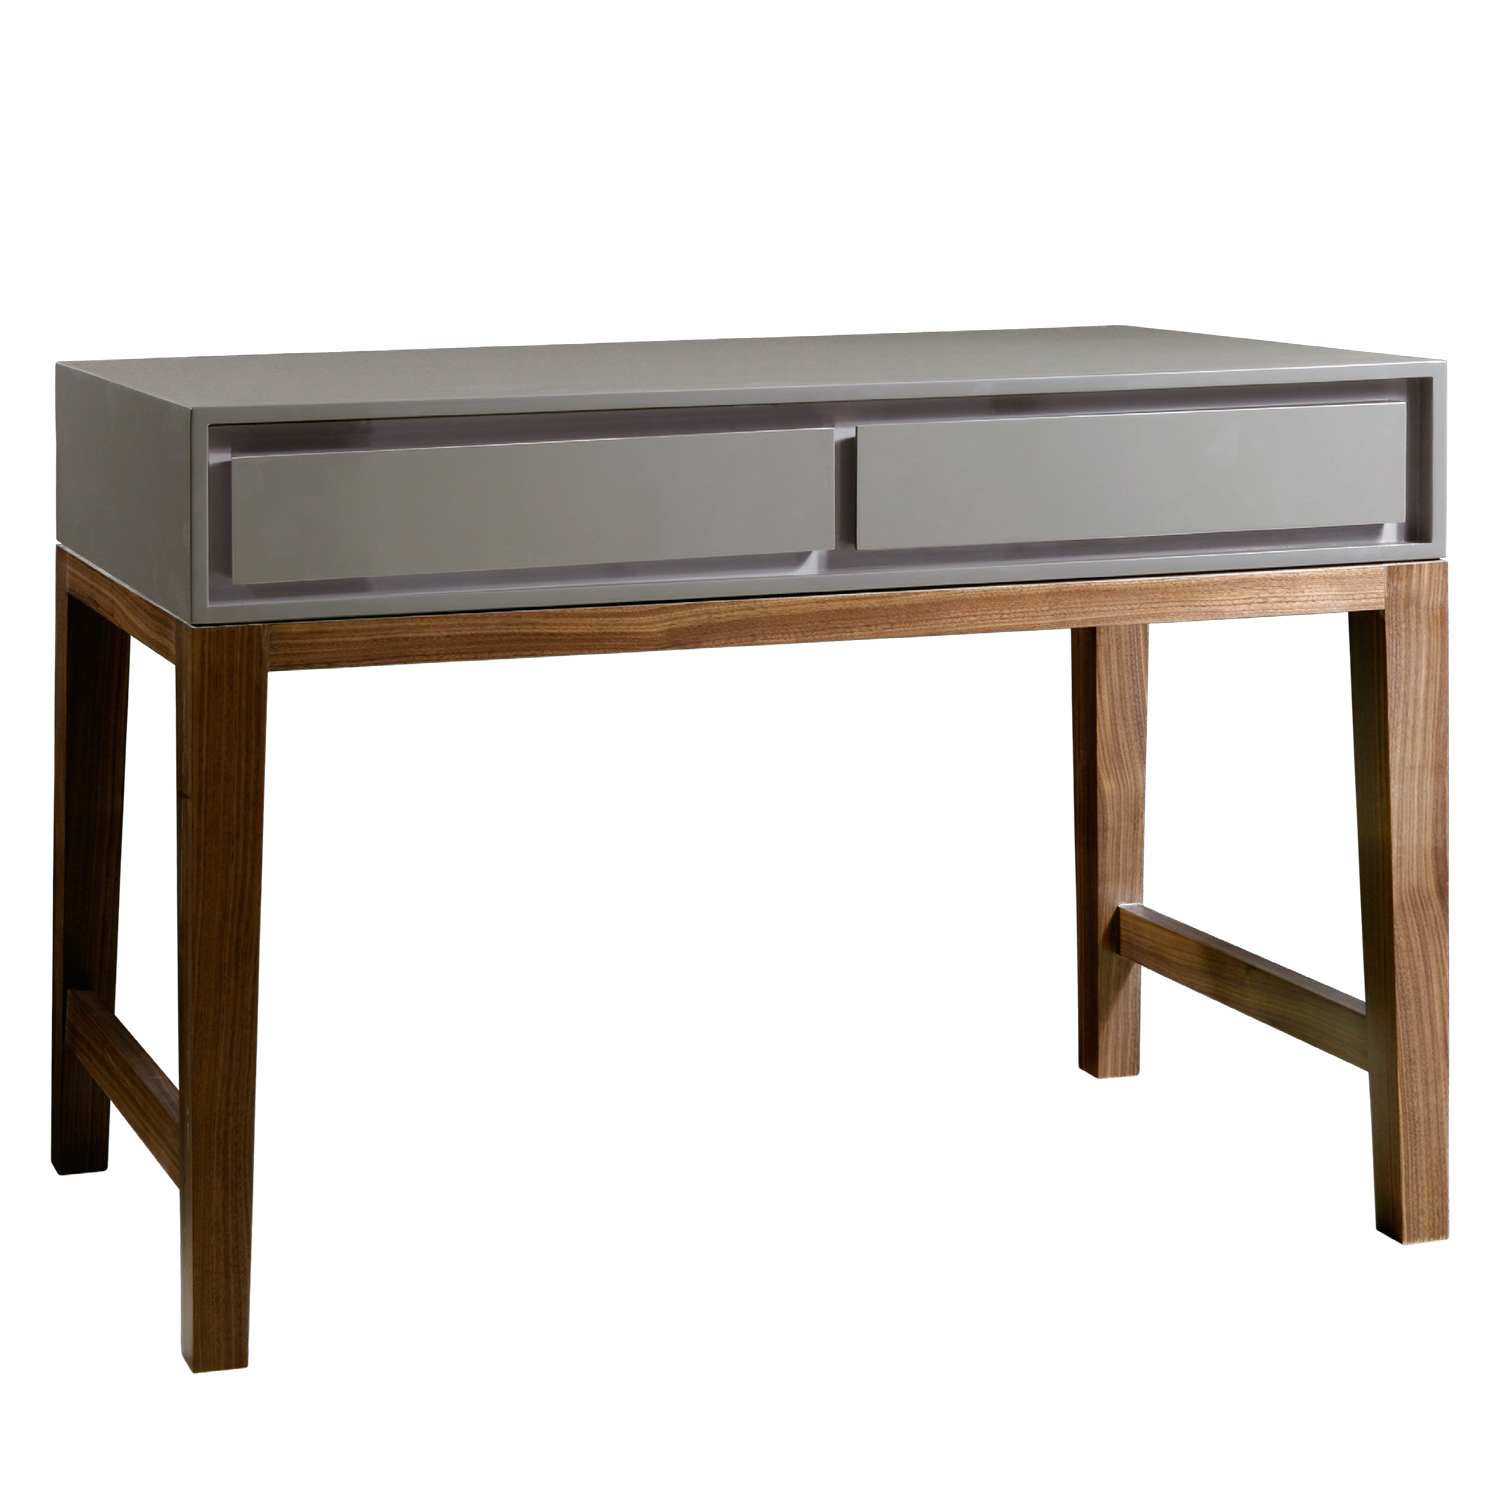 elegant modern accent table grey painted two drawer inspiration furniture midcentury custom gray design for bedroom decors ideas formidable home decorating wood big round